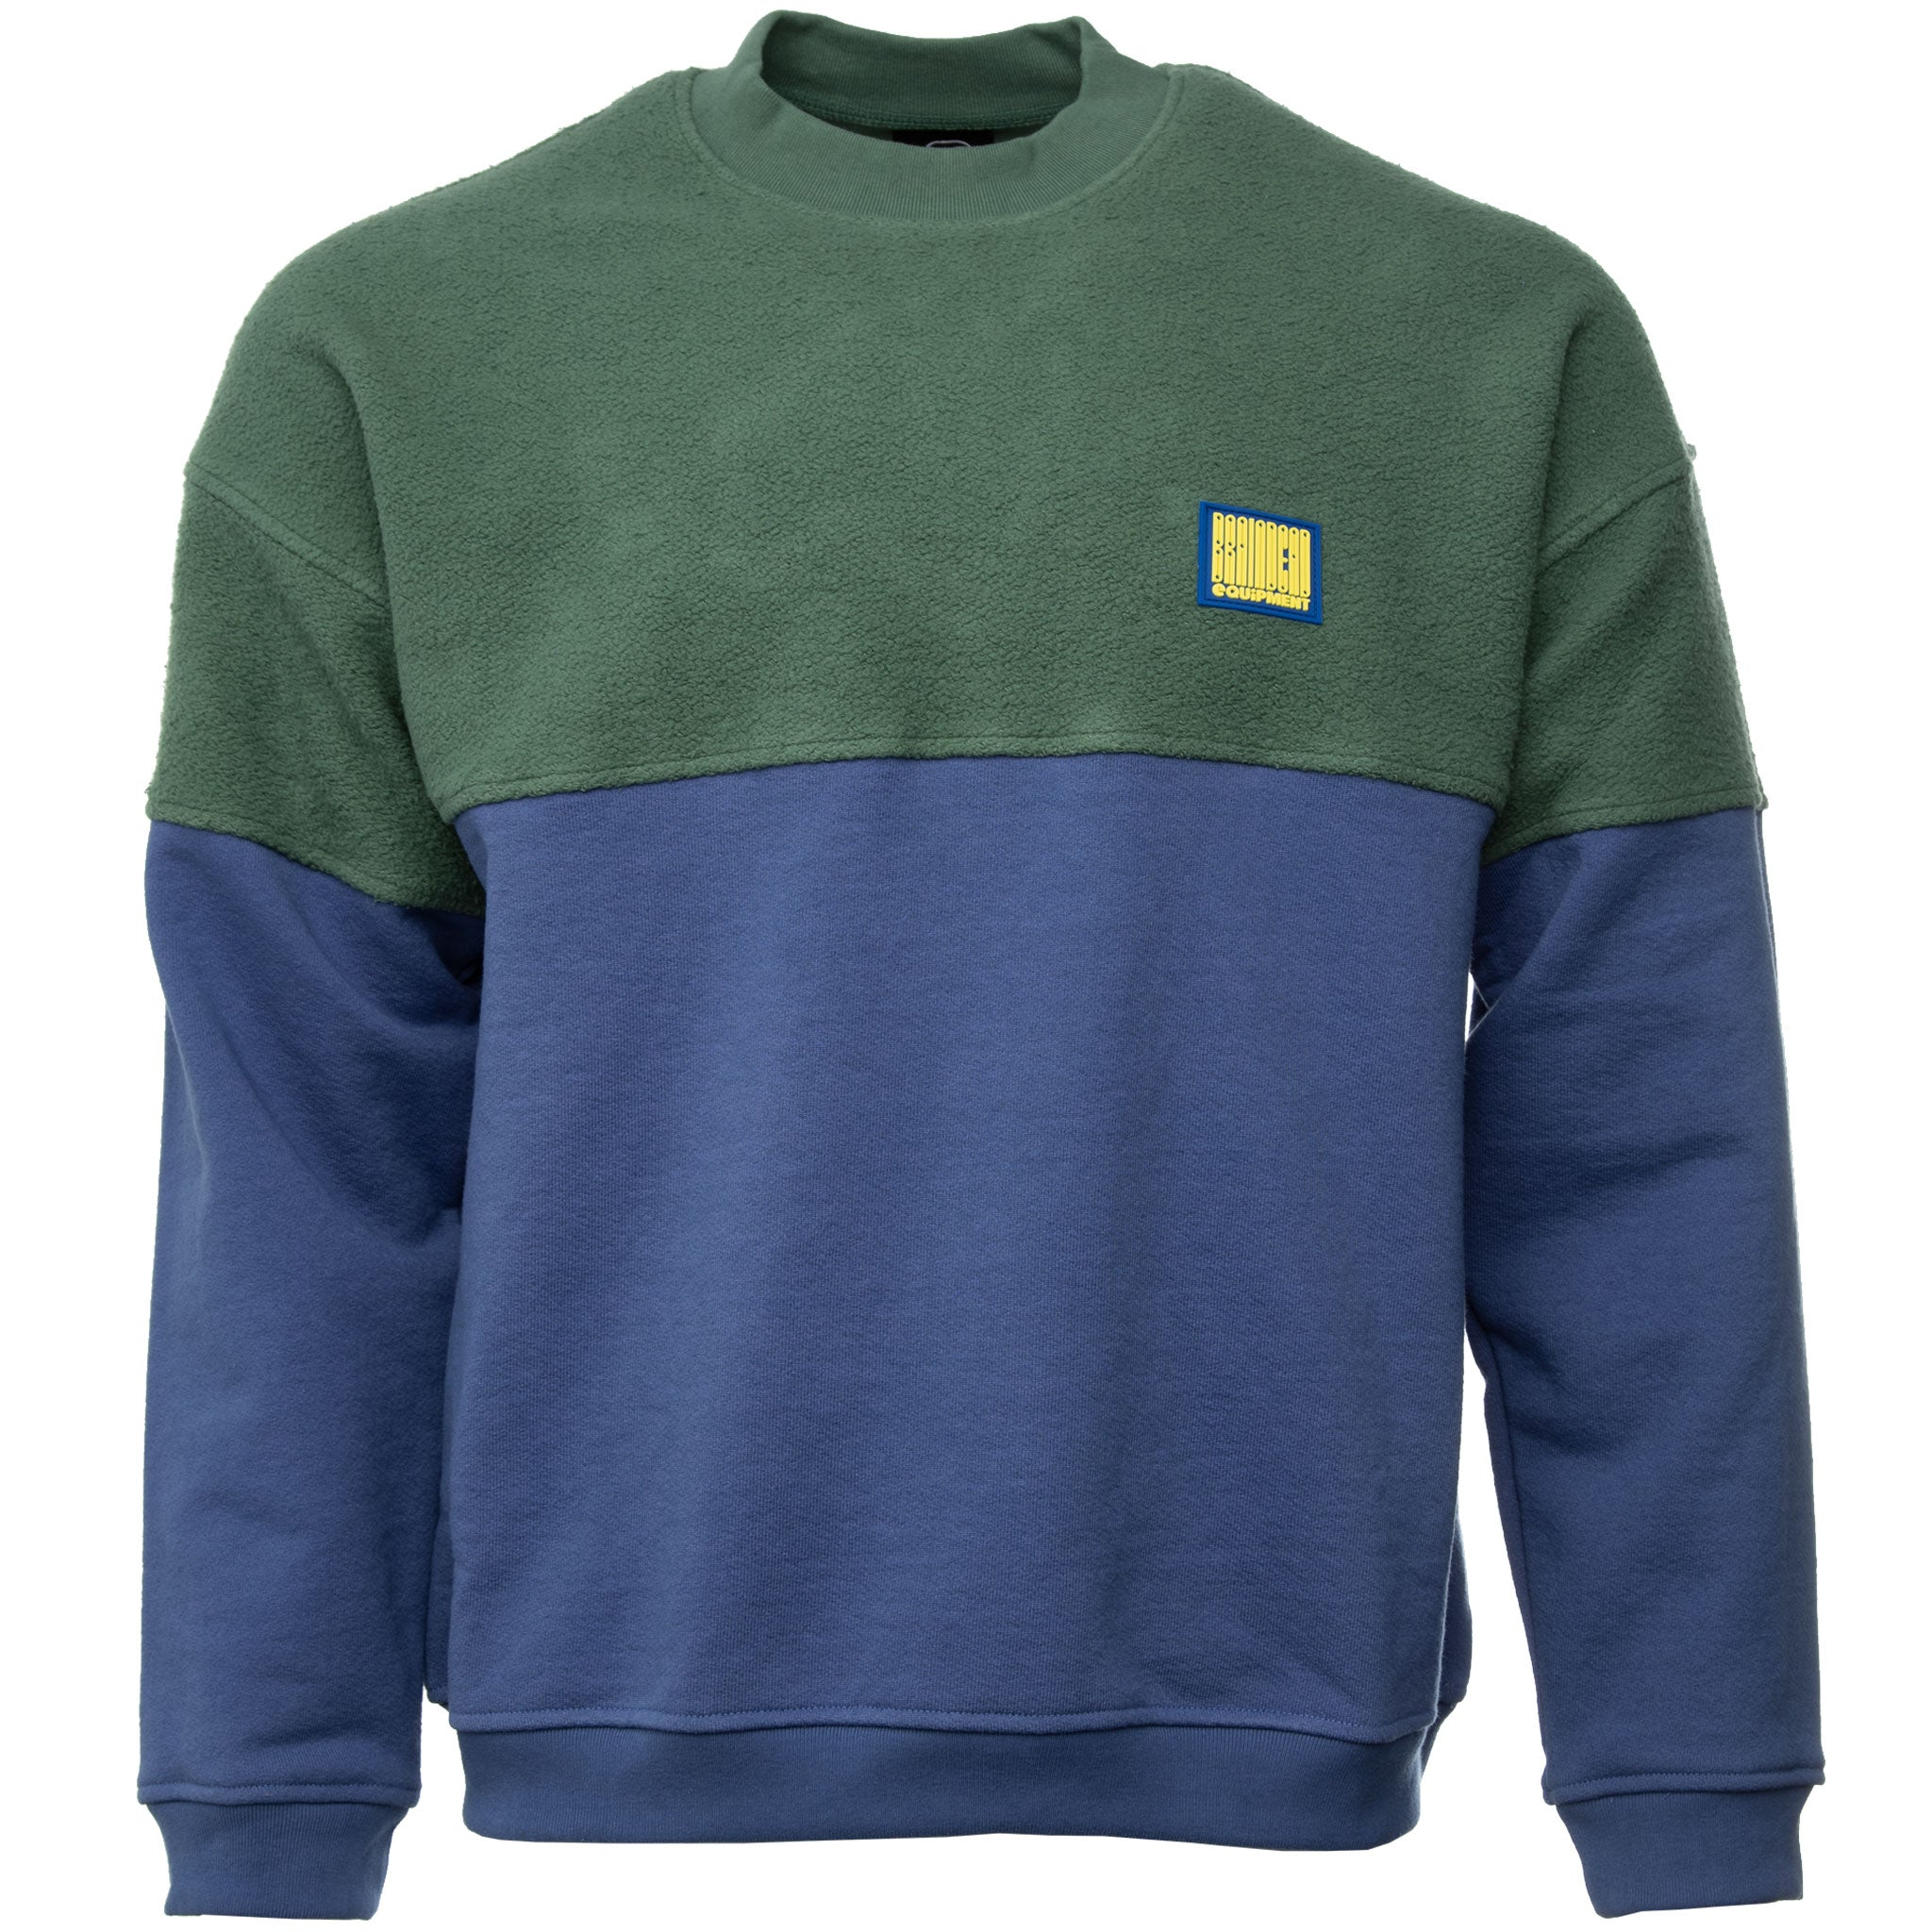 Brain Dead - Green and Blue Split Crewneck Sweatshirt